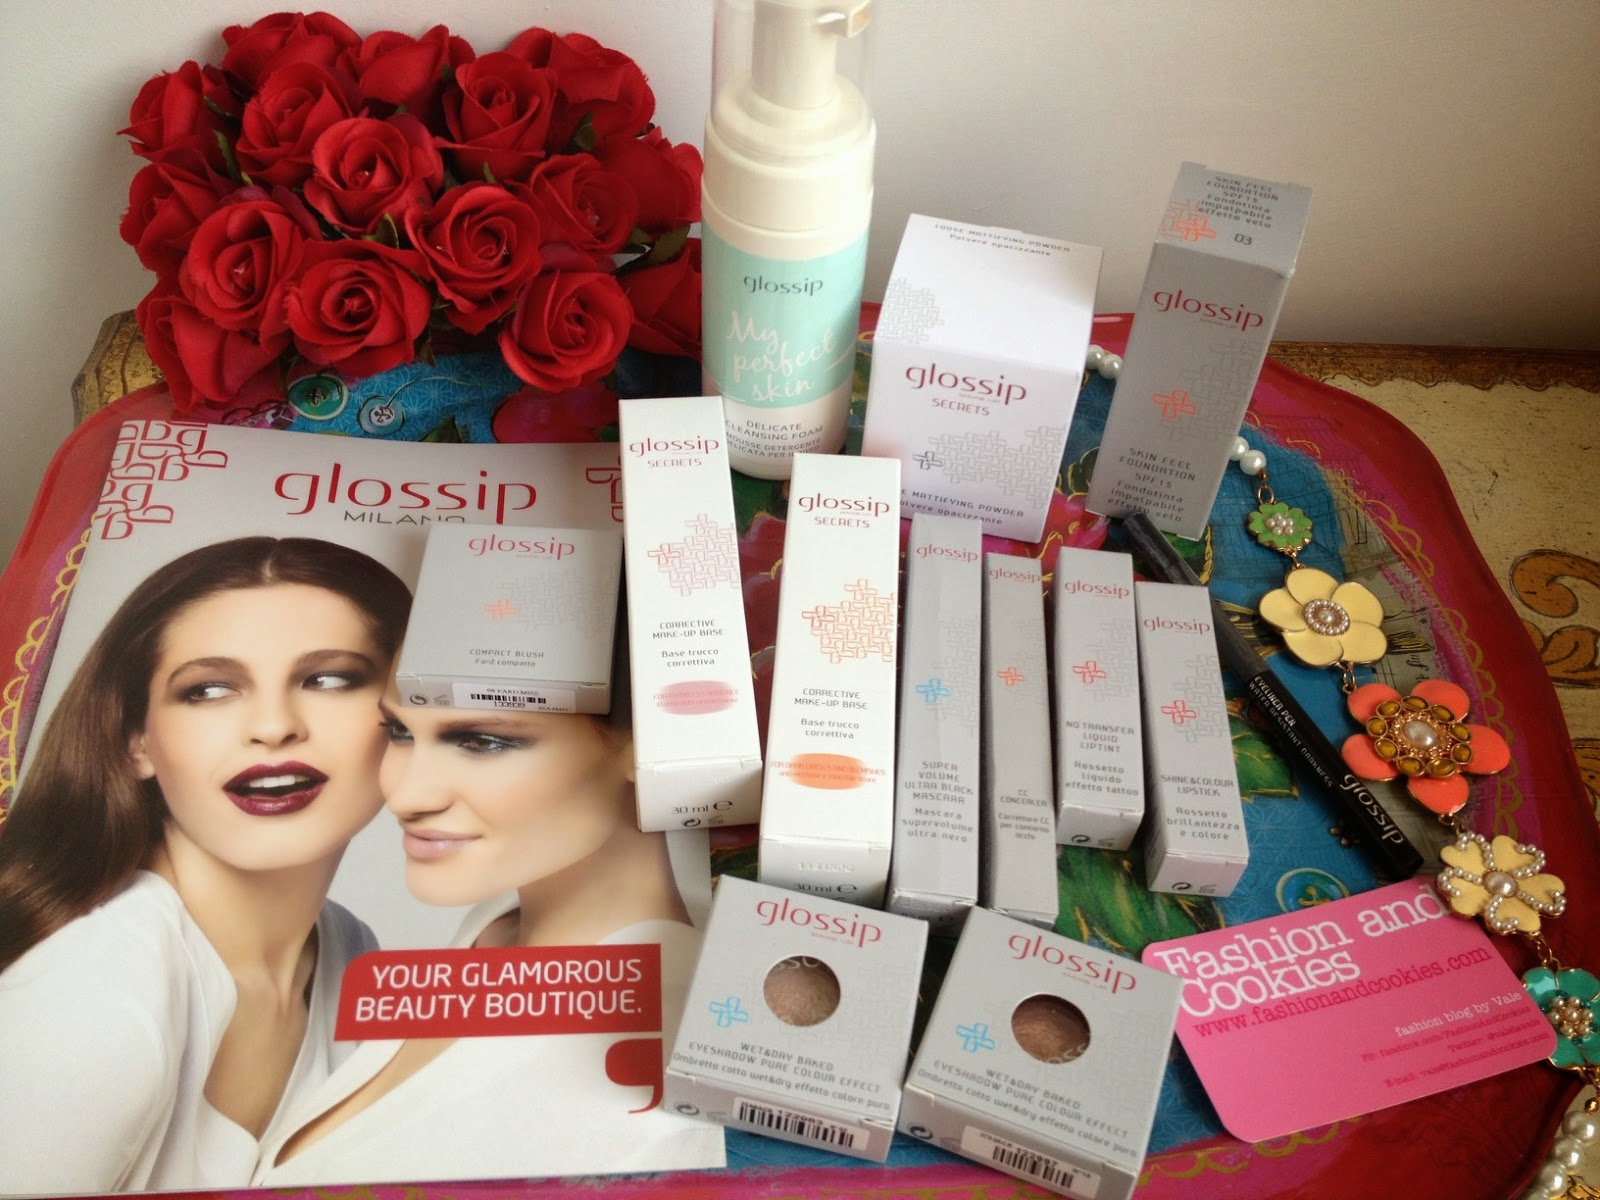 Glossip Milano make-up, Glossip haul, italian brand, trucco, beauty, Fashion and Cookies fashion blog